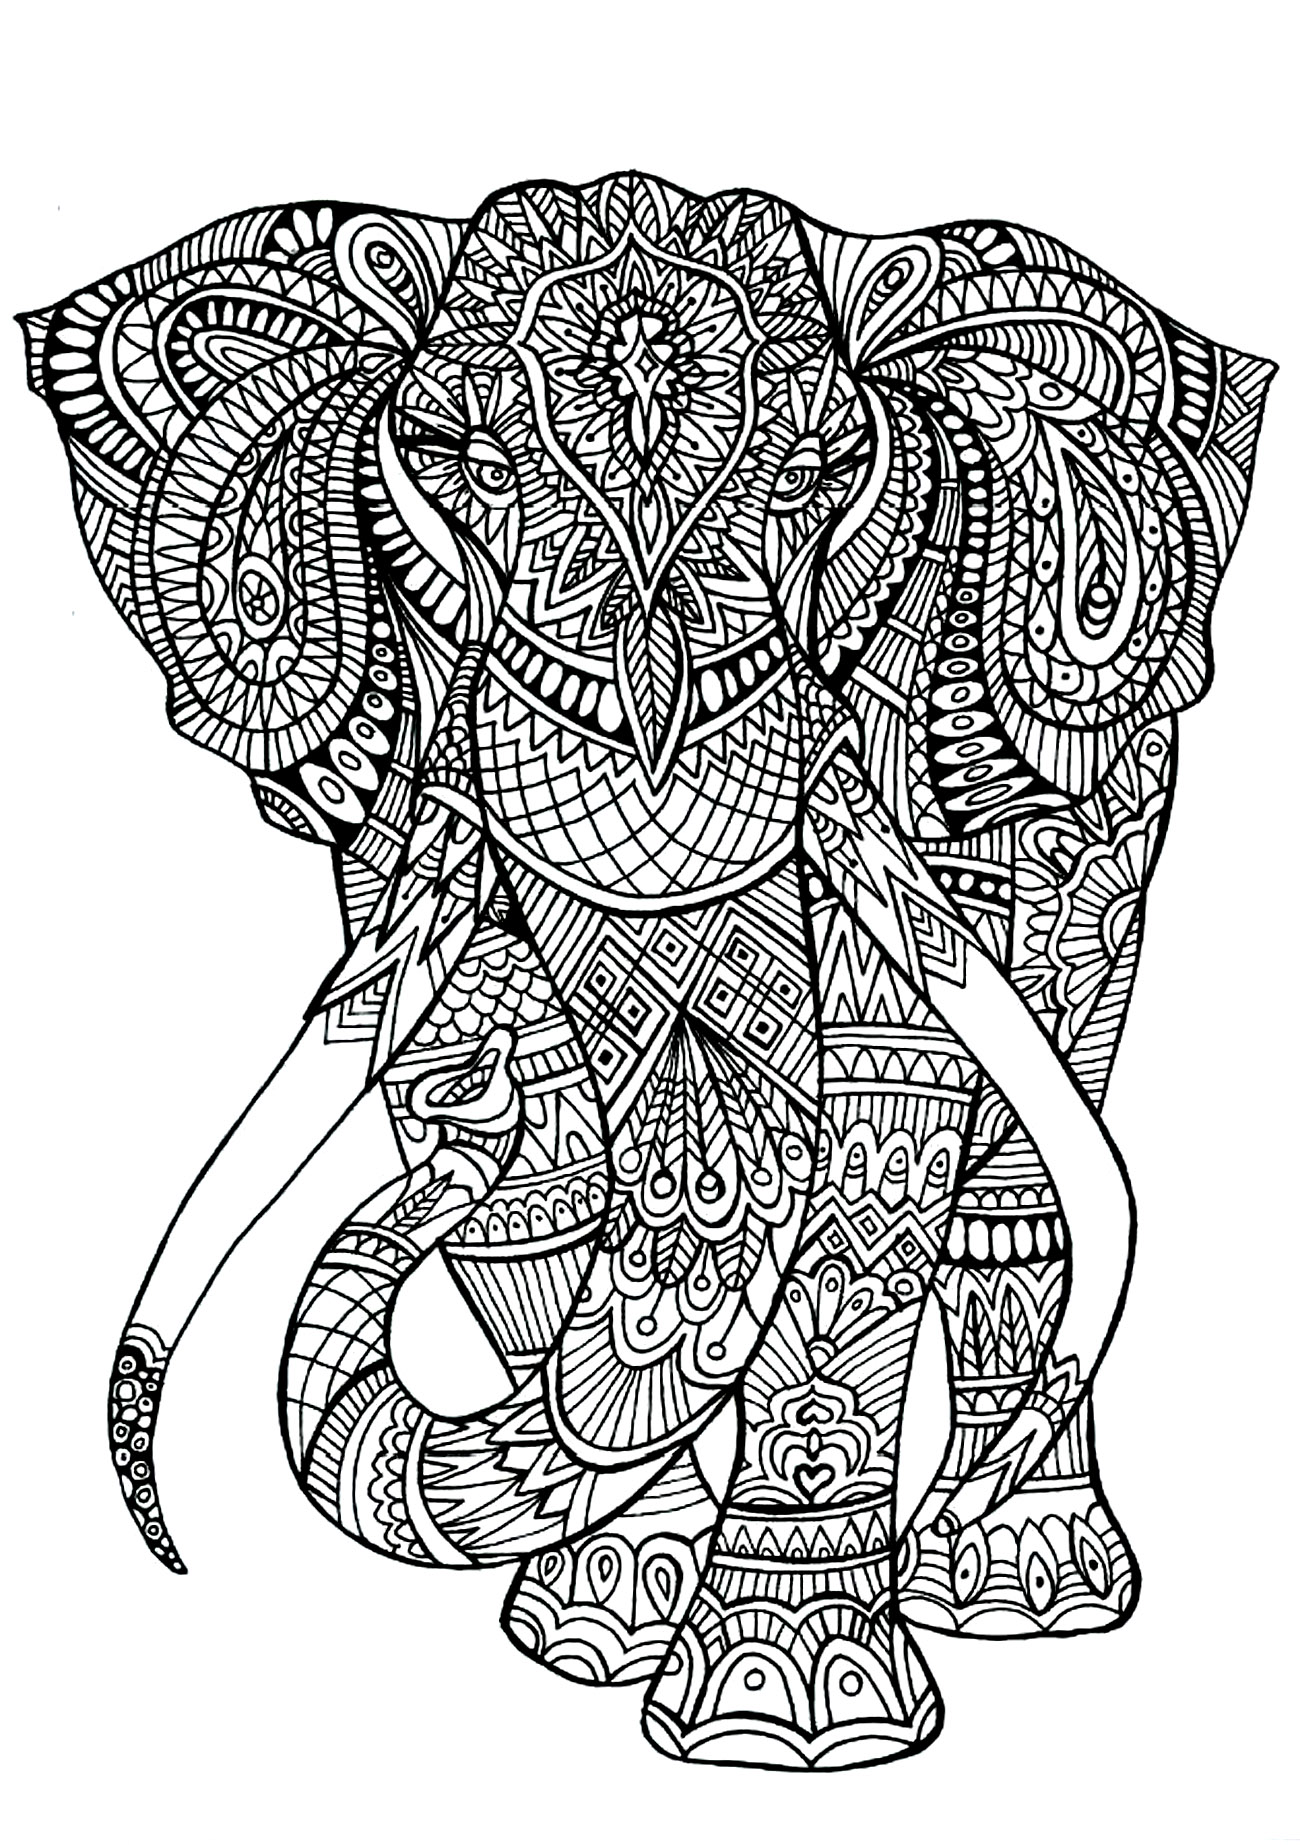 Elephant patterns | Animals - Coloring pages for adults ...